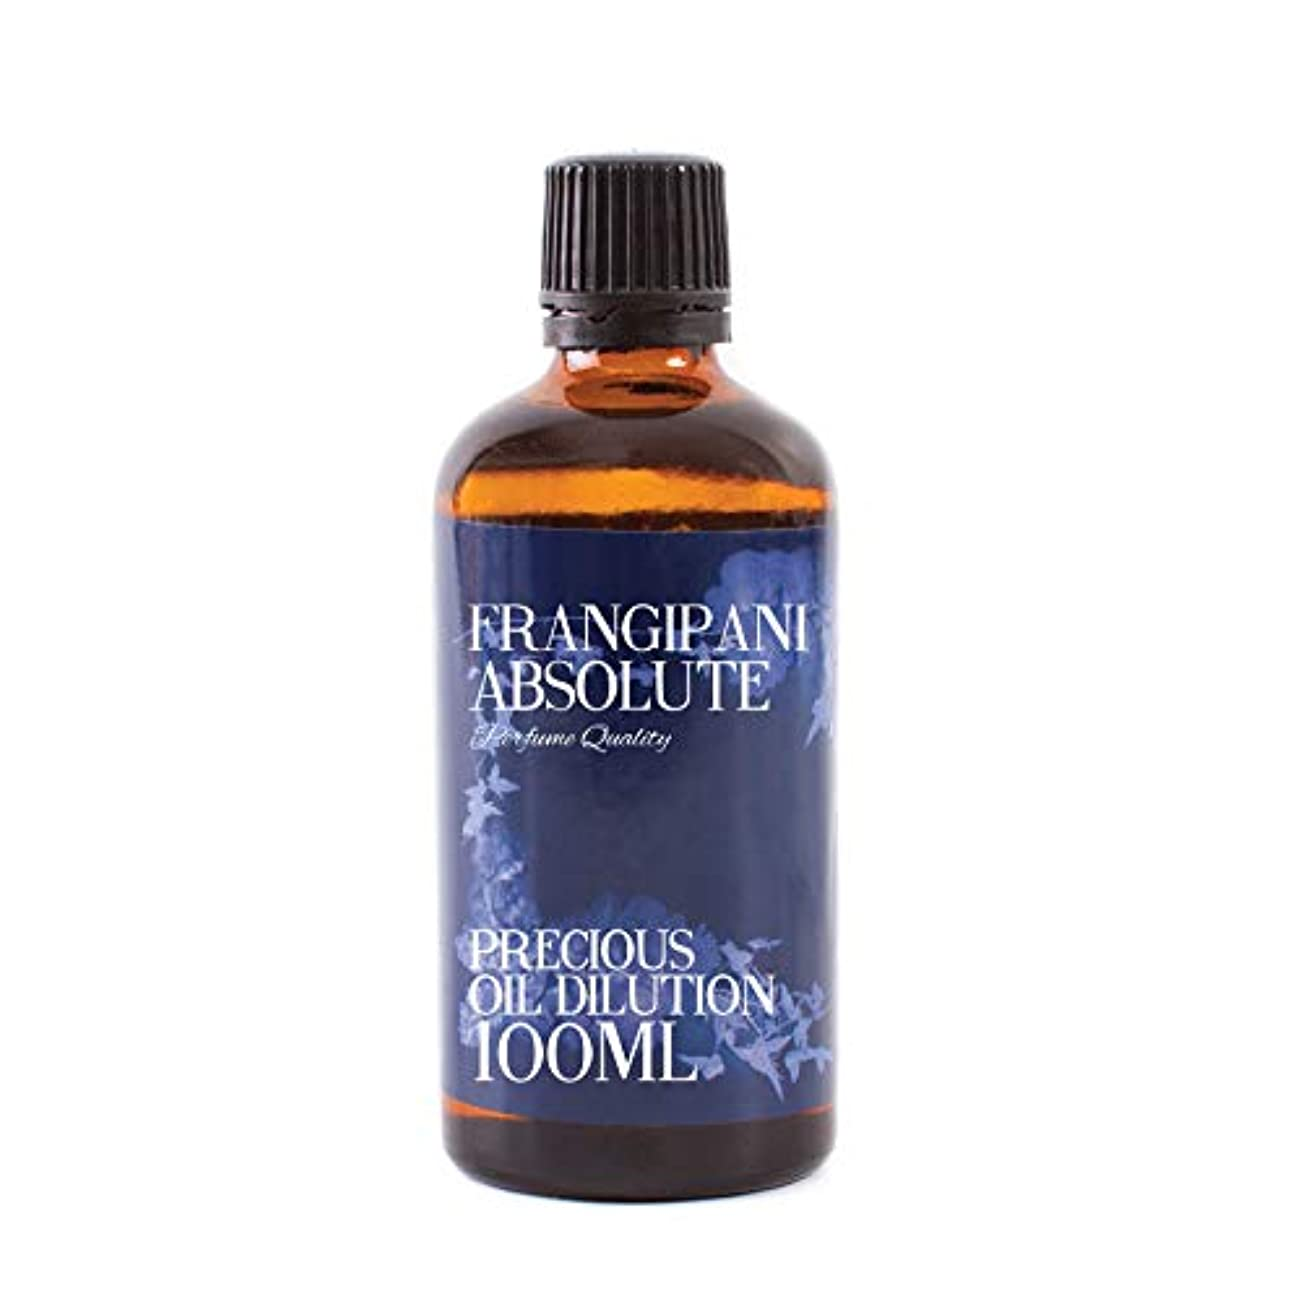 モザイクレトルトケーブルカーFrangipani PQ Absolute Oil Dilution - 100ml - 3% Jojoba Blend